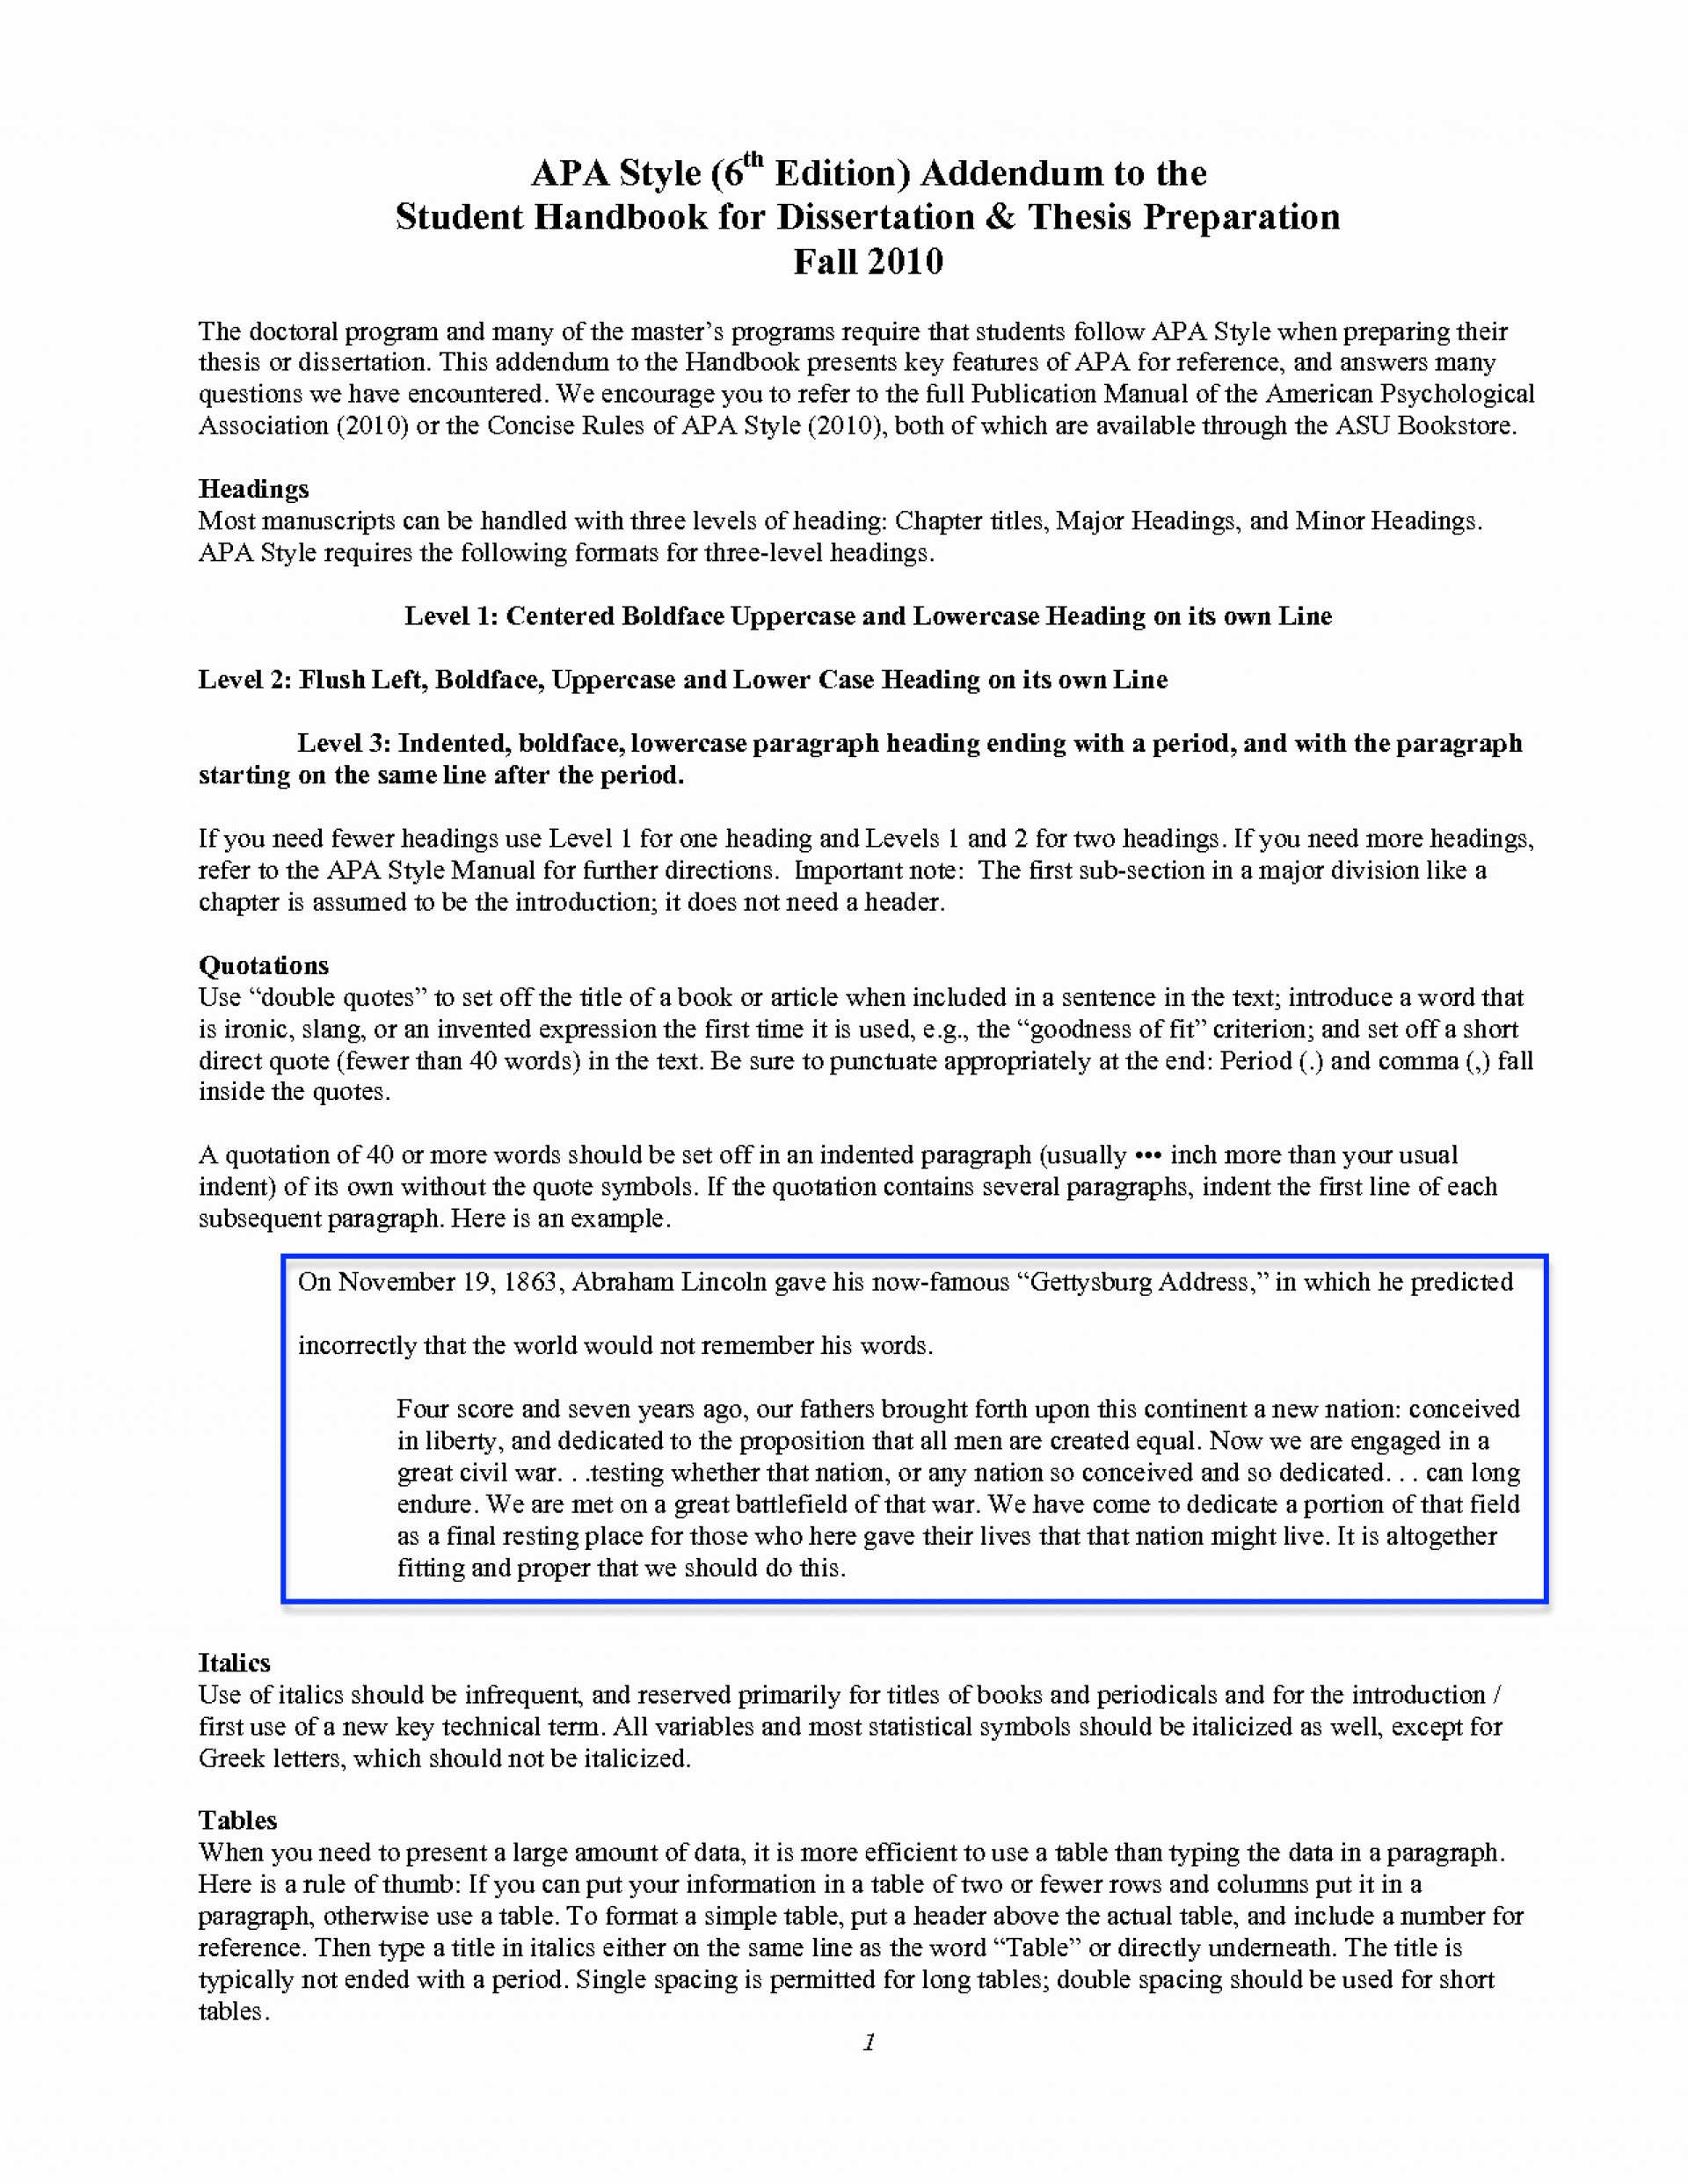 008 Apa Style Research Paper Template 6th Edition Format Best Of Sample Imposing Example 1920